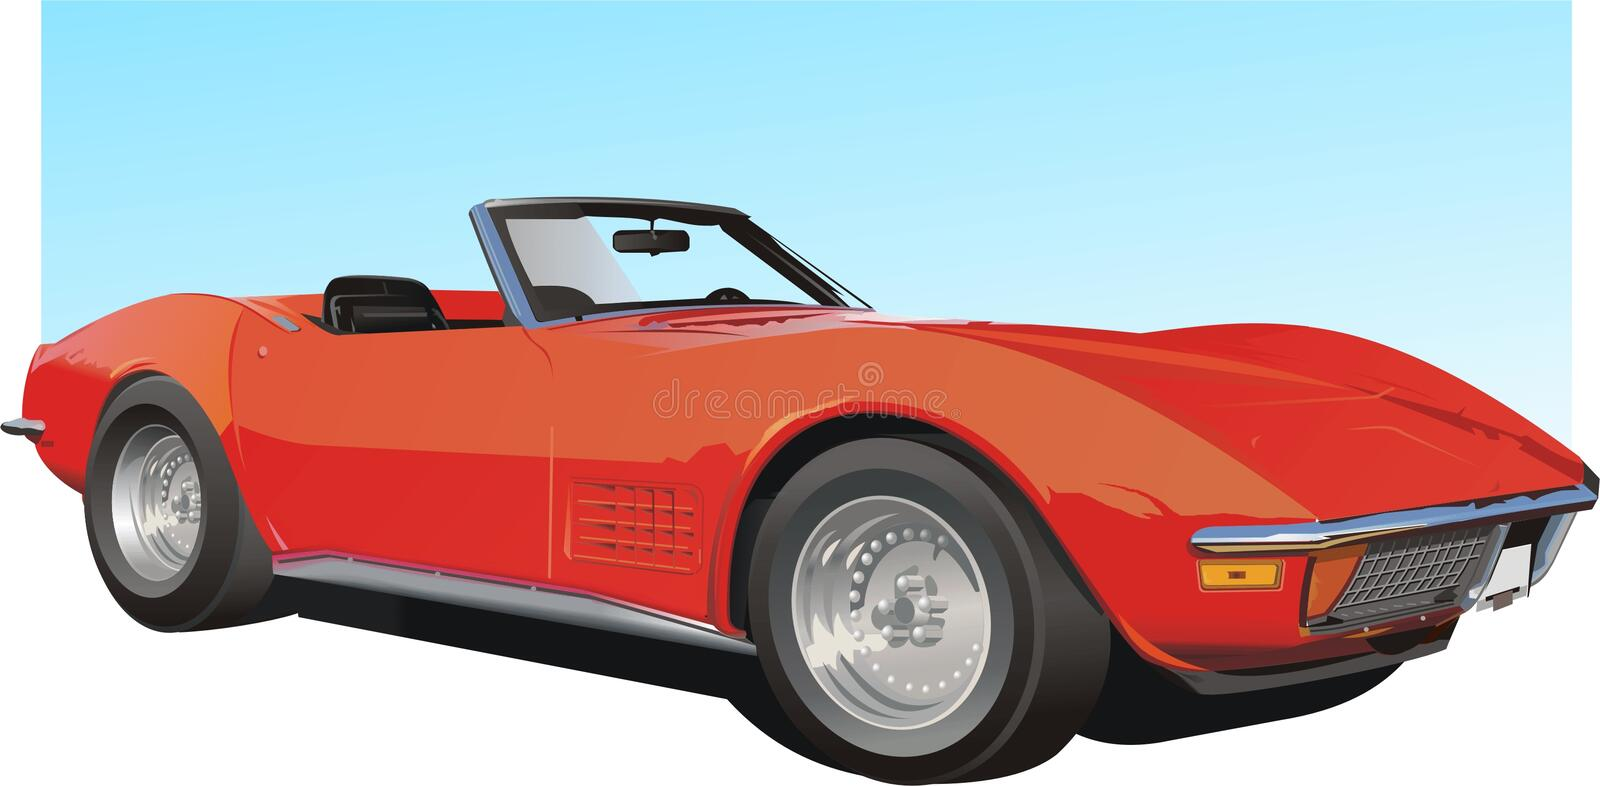 Red American Sports Car stock illustration